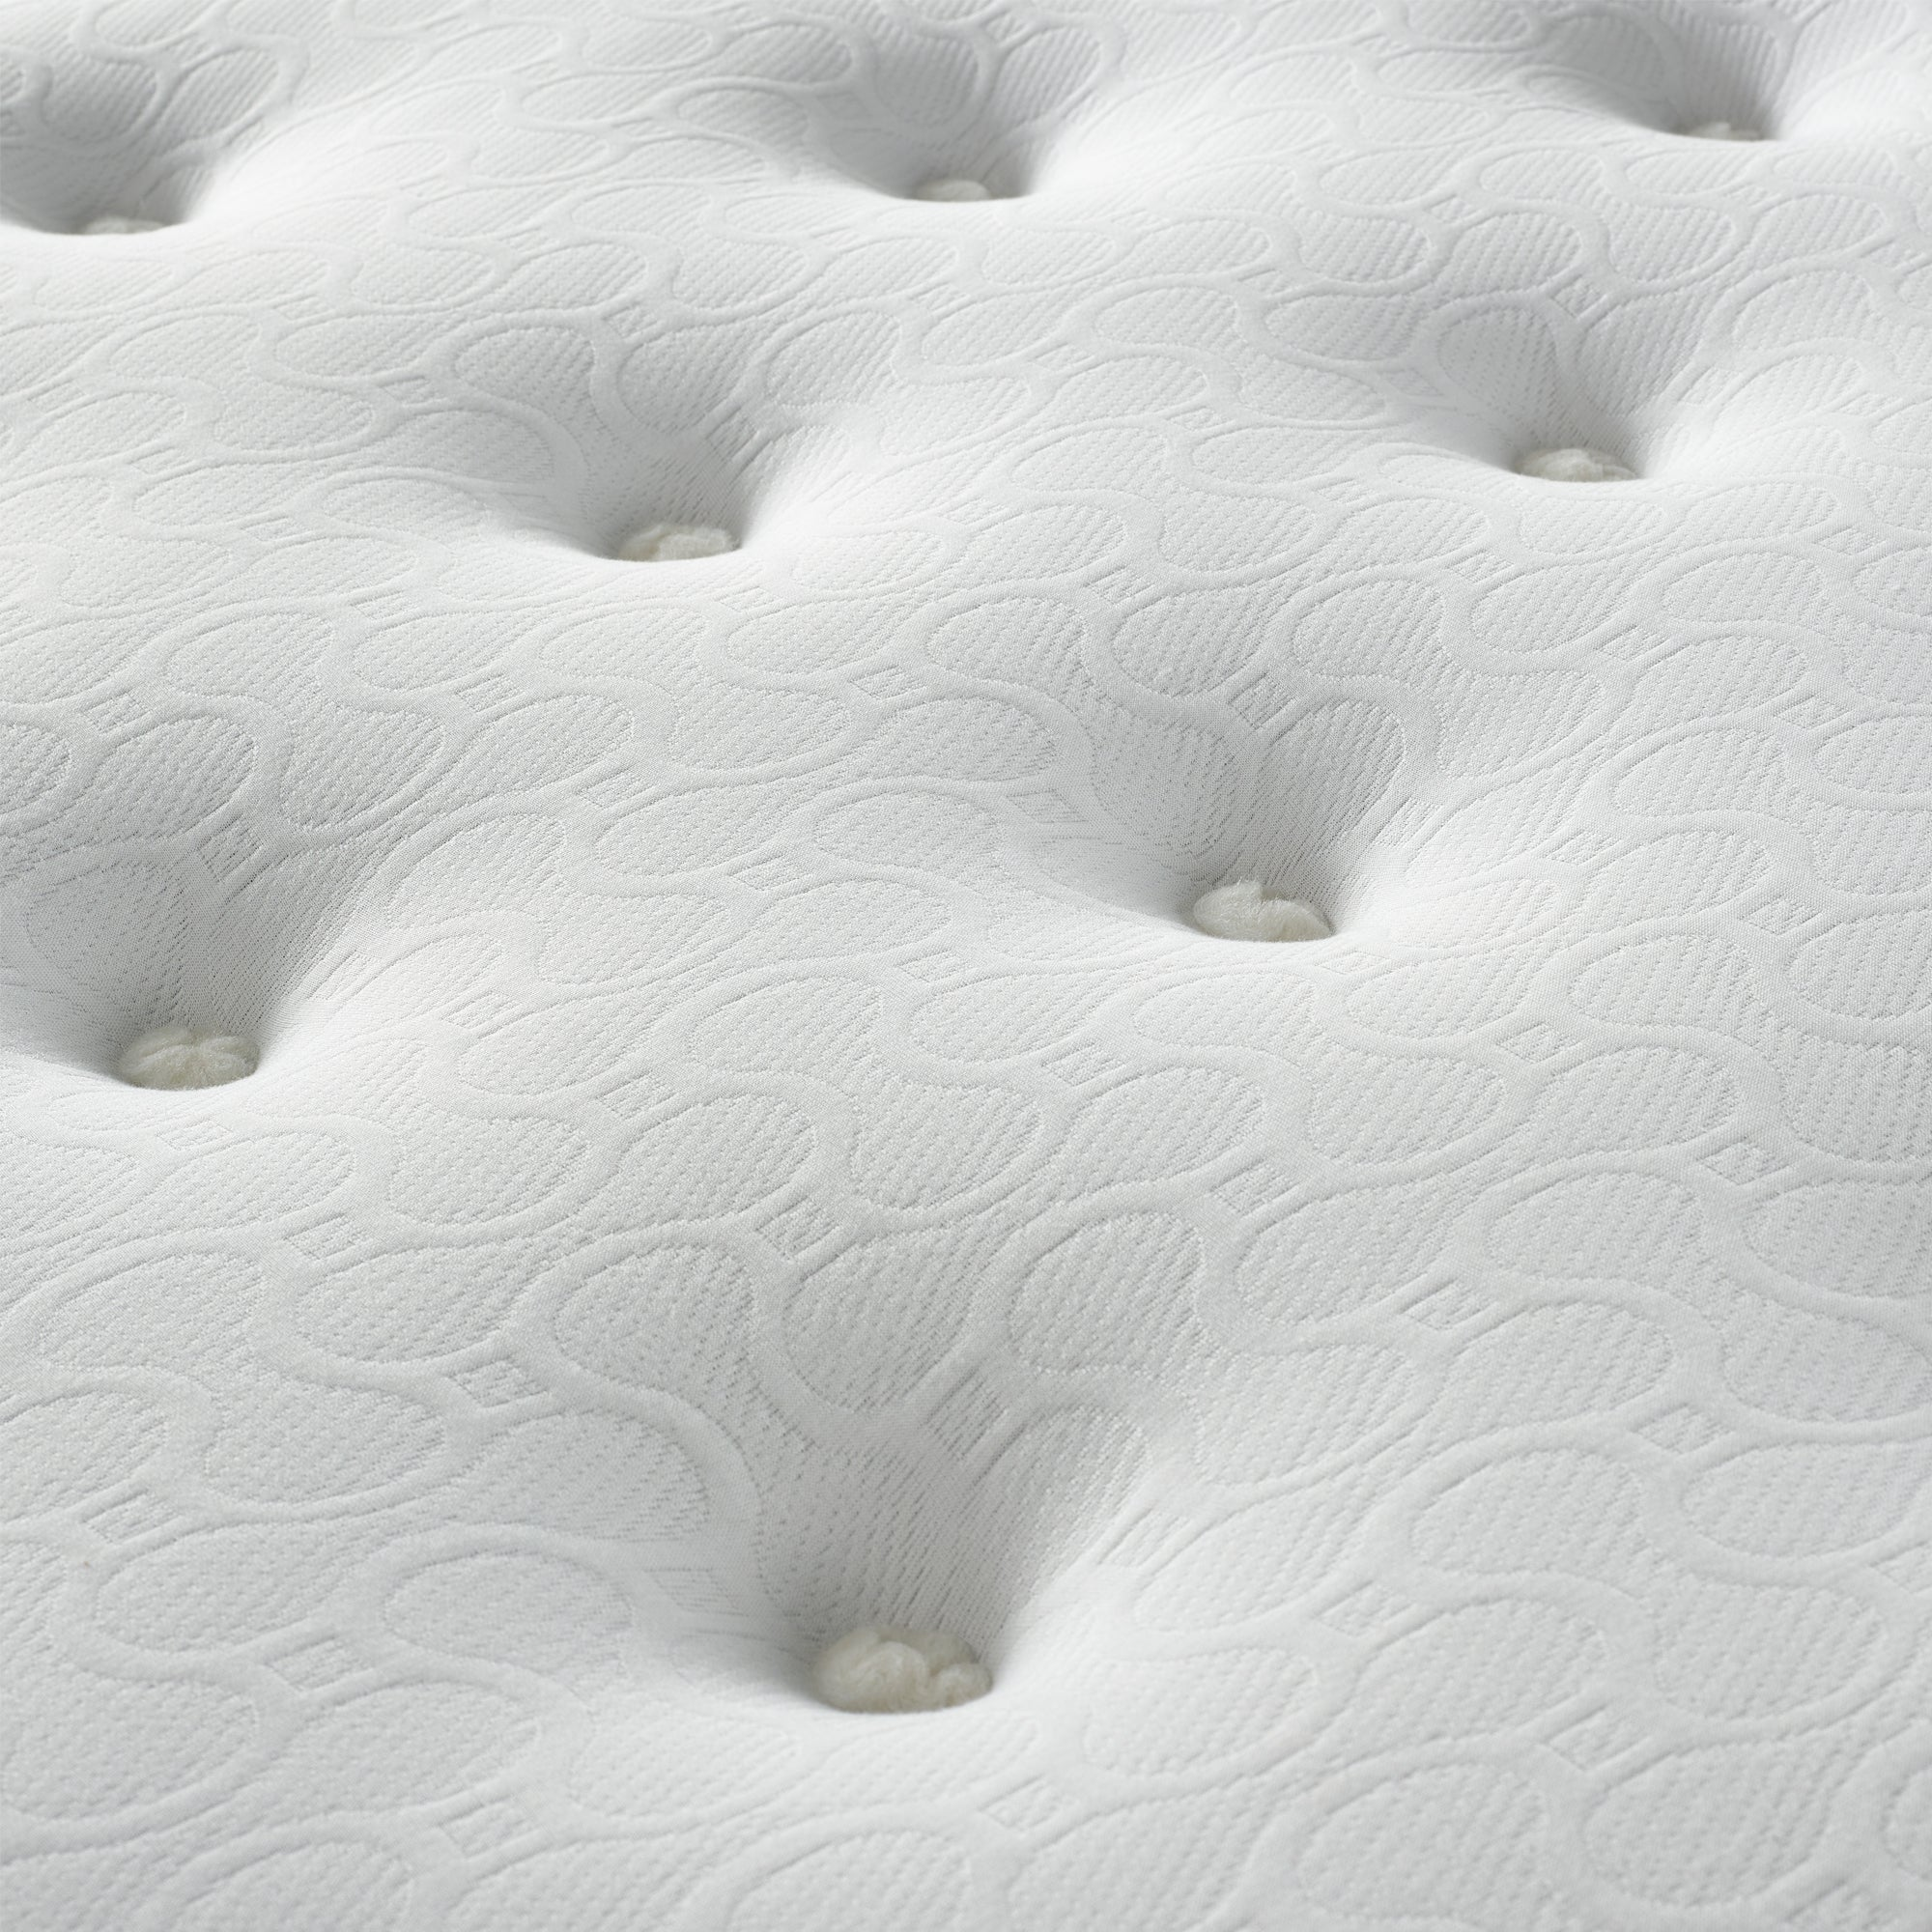 Latex 1000 Mattress Top Detailing